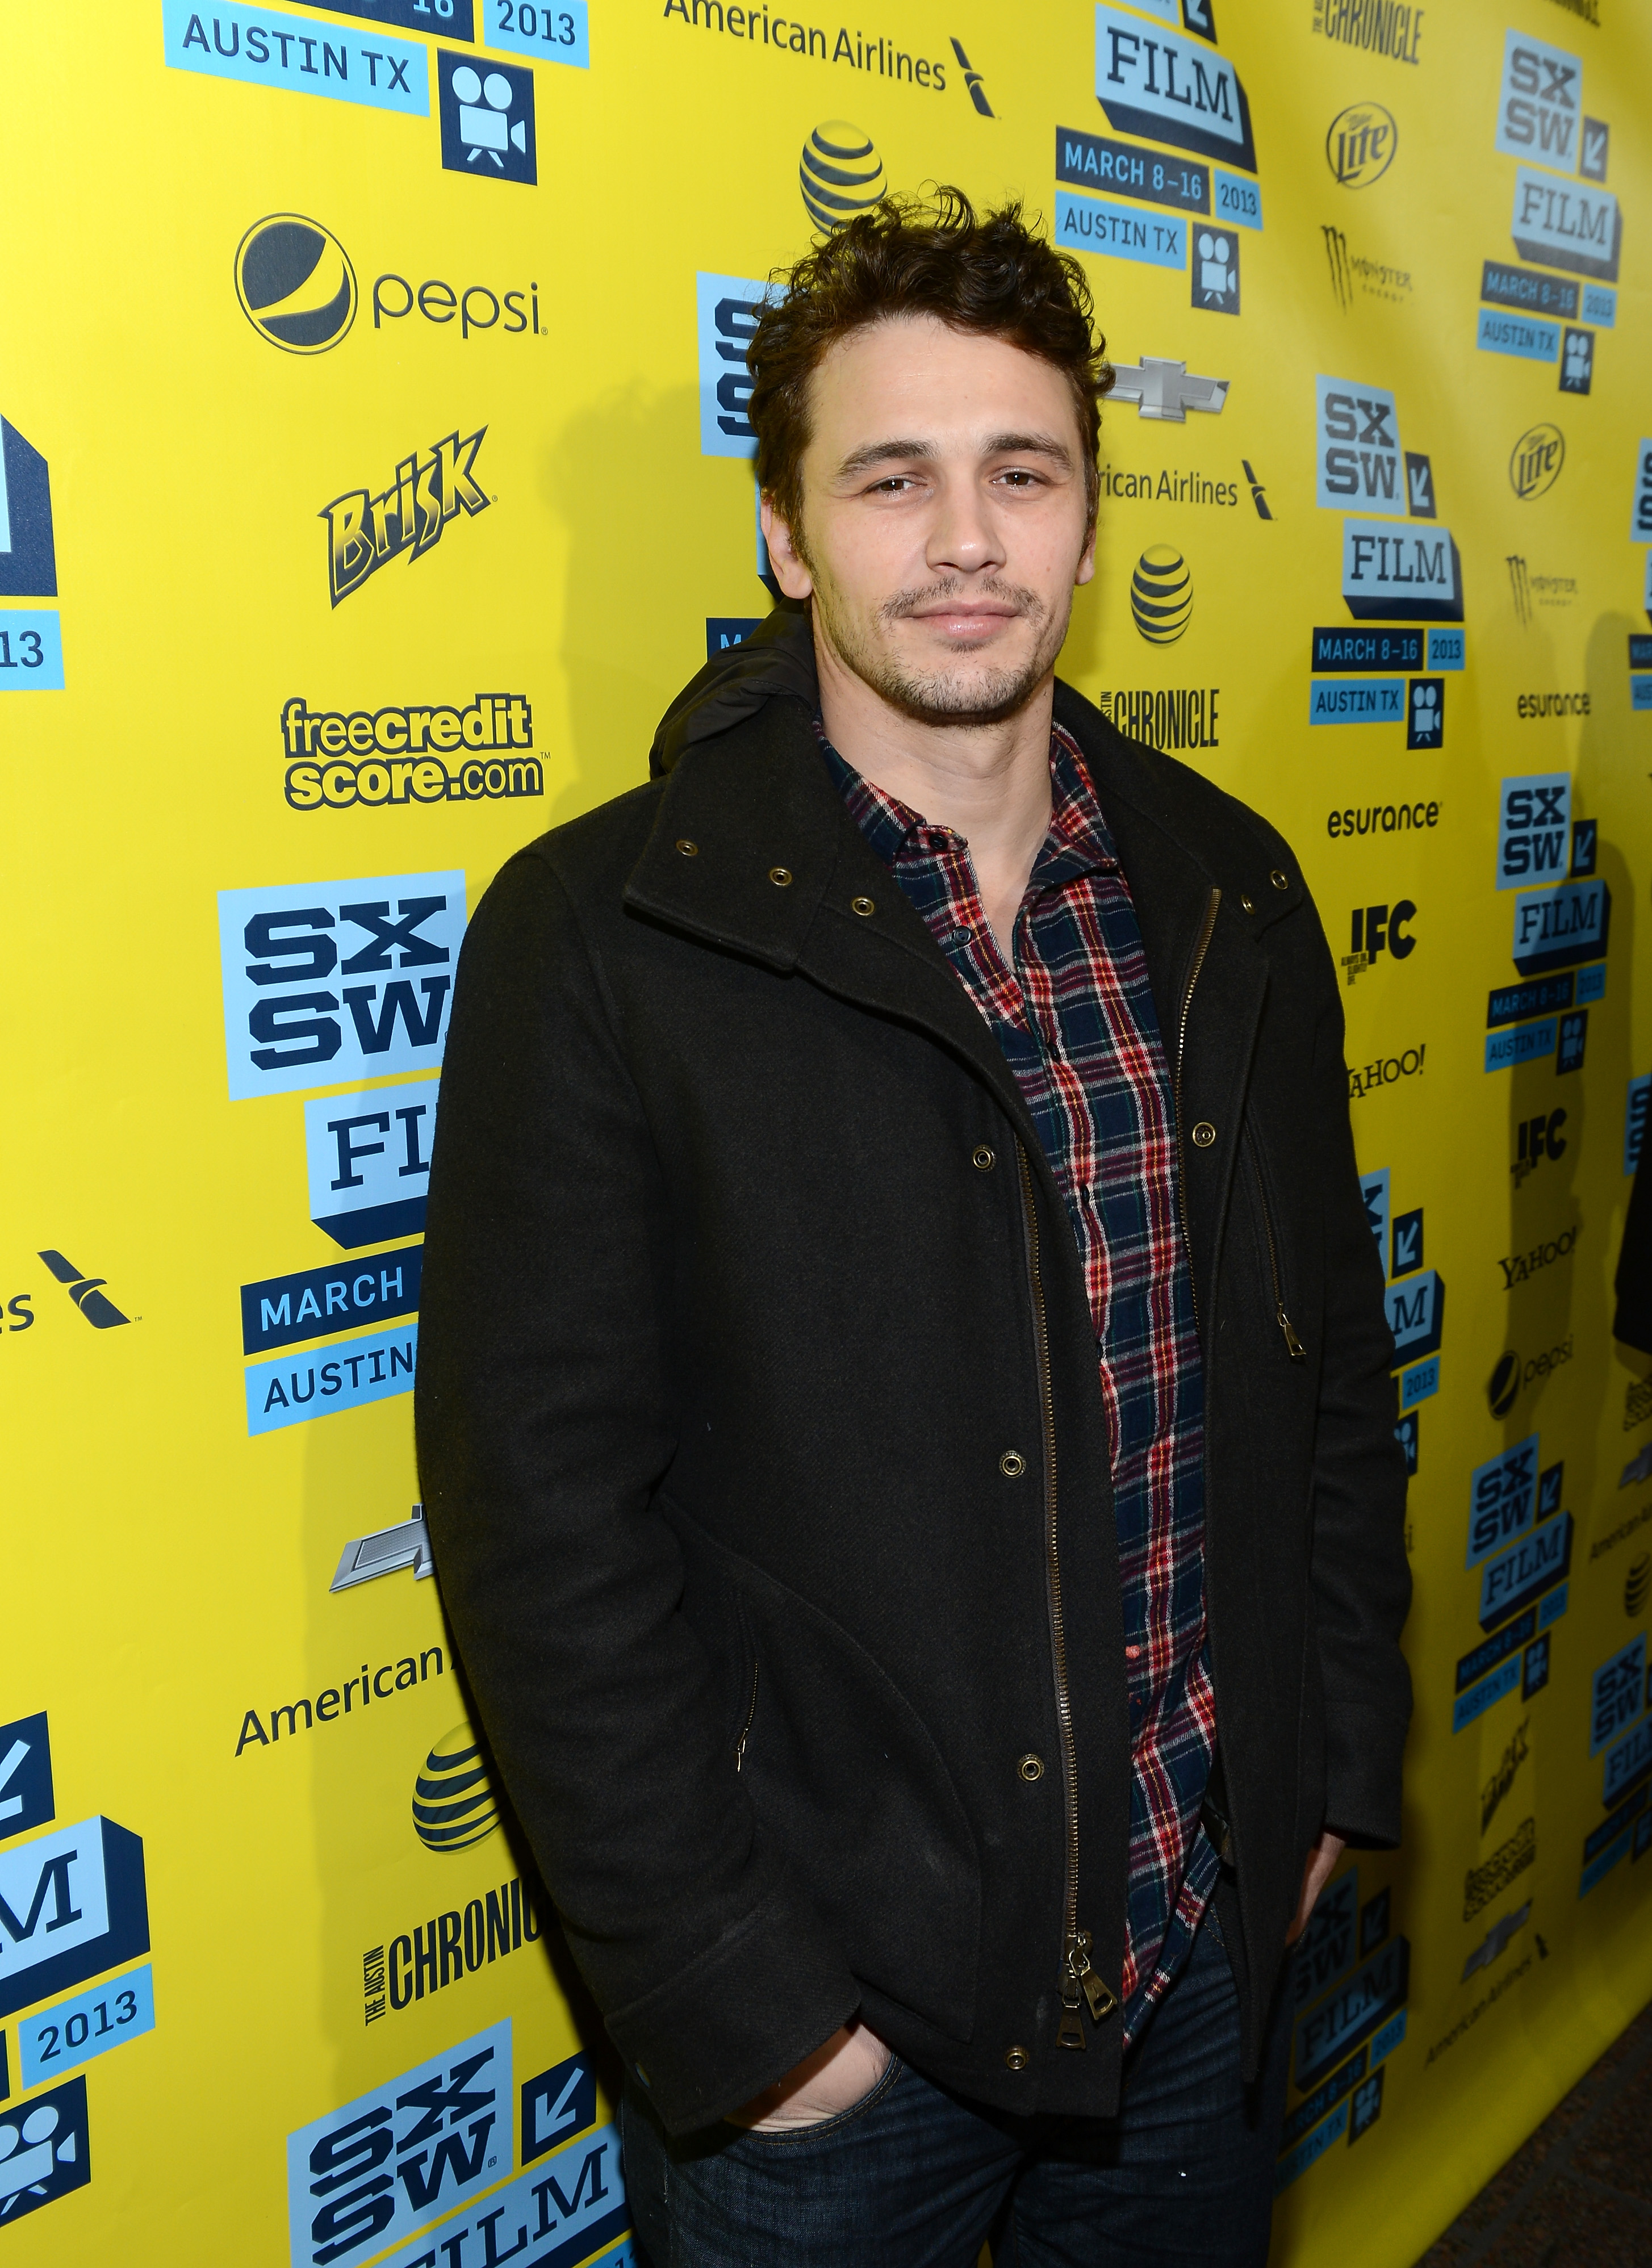 James Franco hit the red carpet at the Spring Breakers premiere at SXSW.